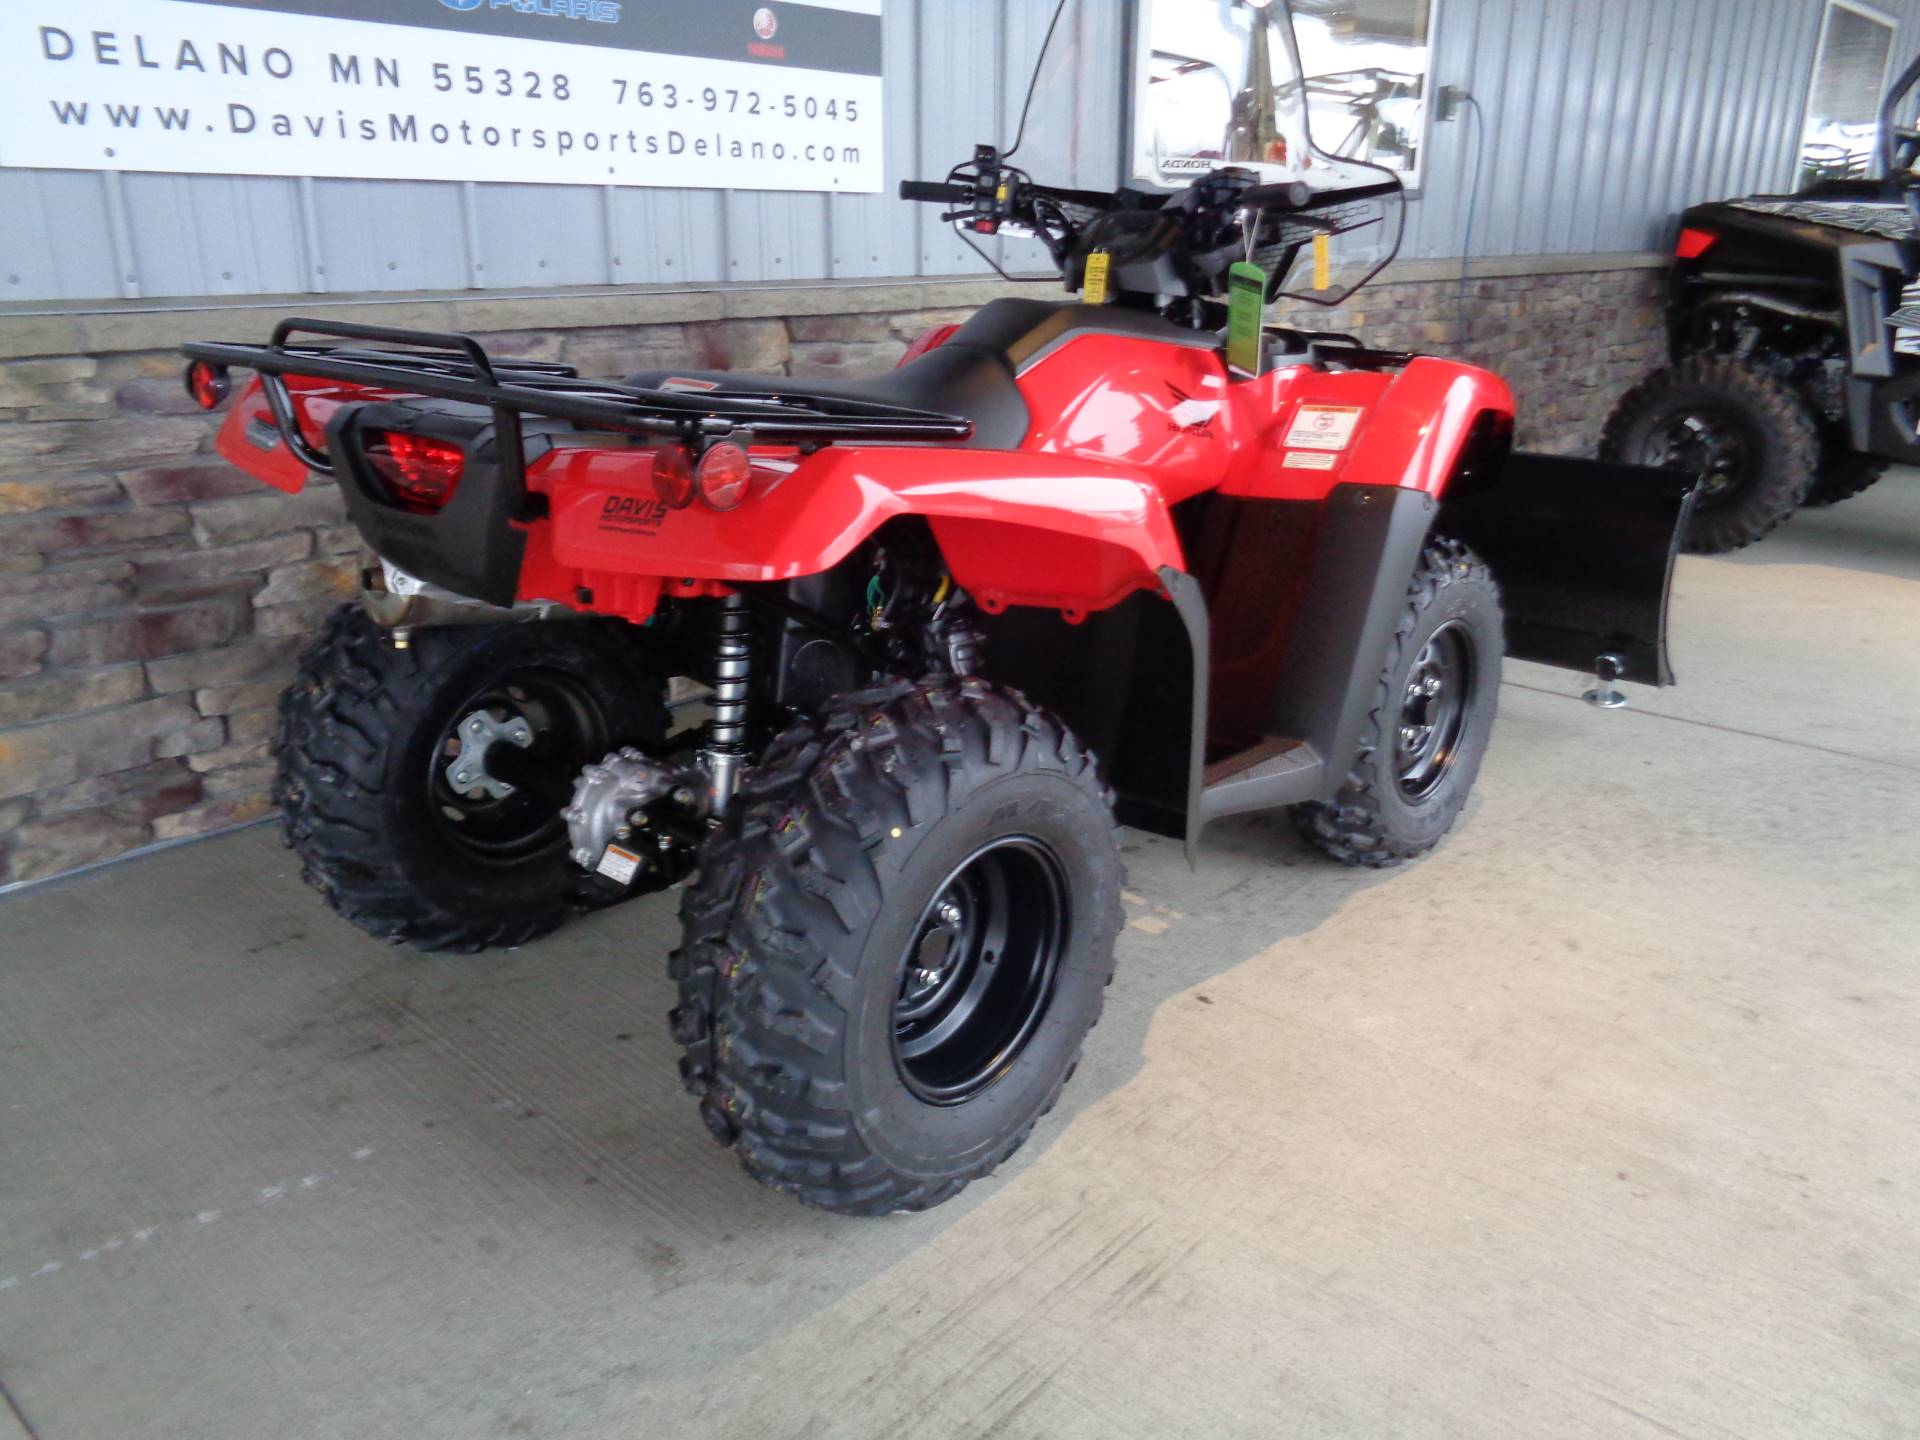 2019 Honda FourTrax Rancher 4x4 ES in Delano, Minnesota - Photo 5